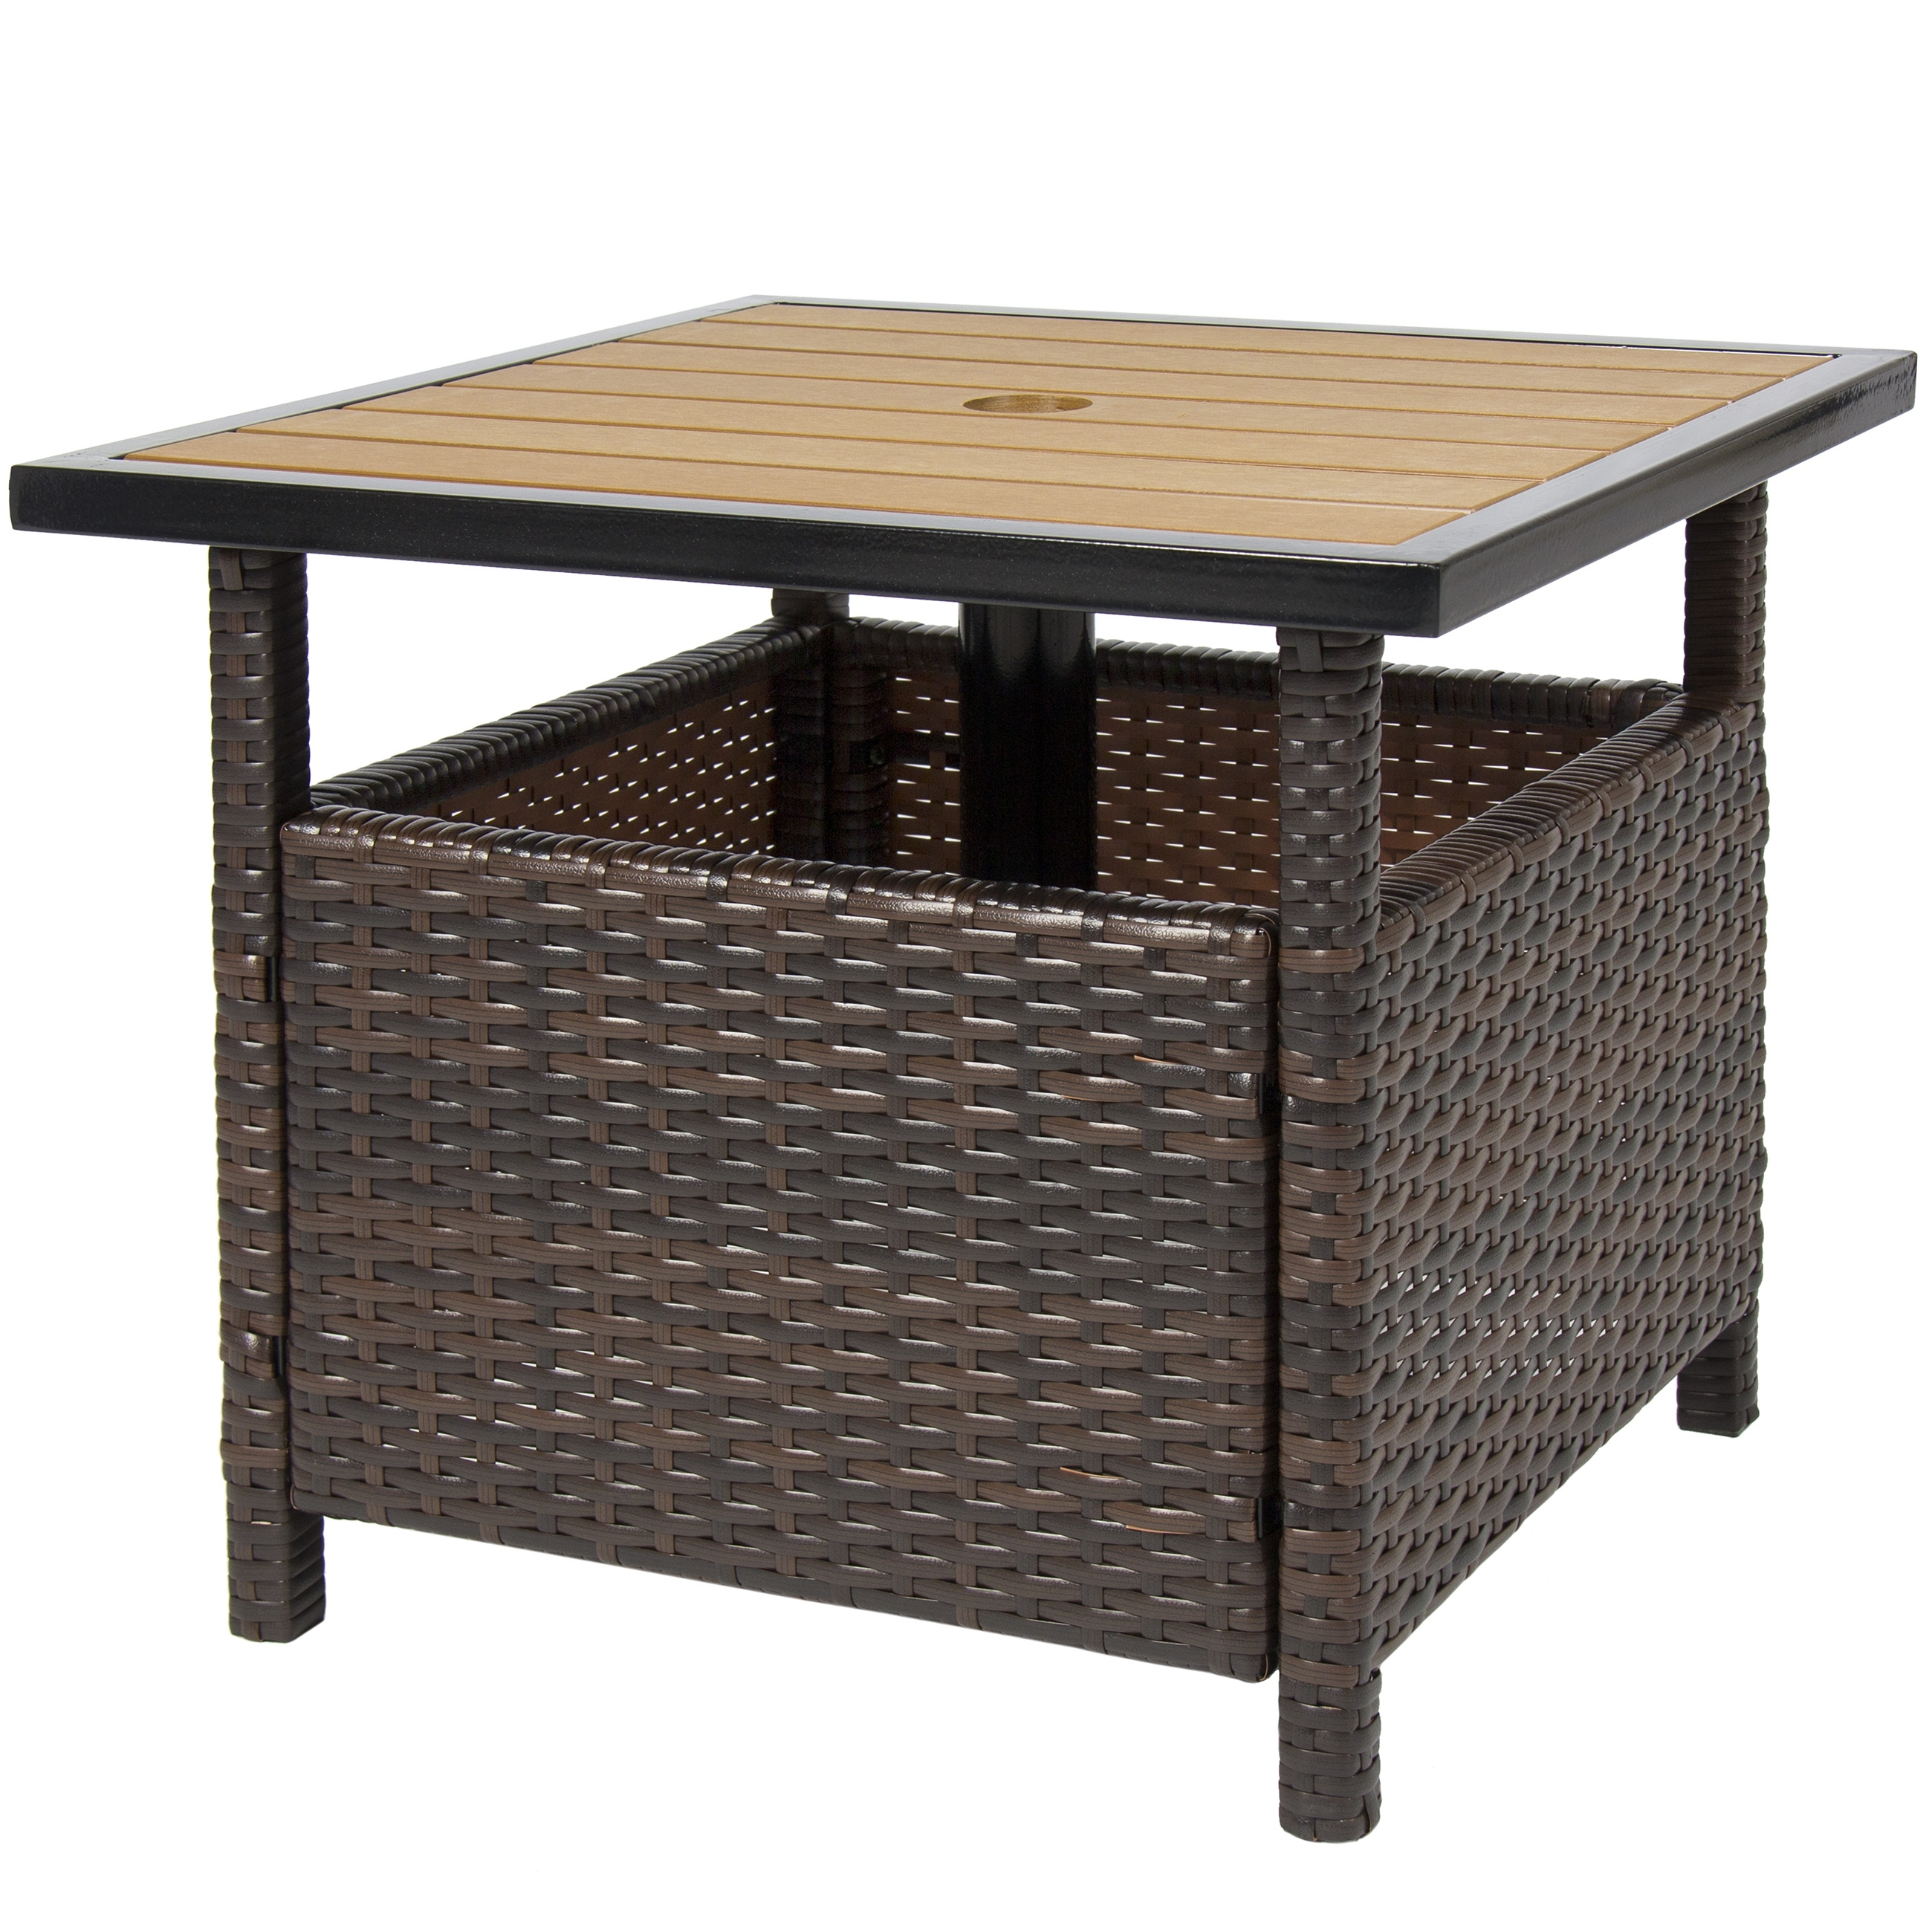 Patio Umbrella Stands With Wheels Pertaining To 2018 Best Choice Products Outdoor Furniture Wicker Rattan Patio Umbrella (View 9 of 20)